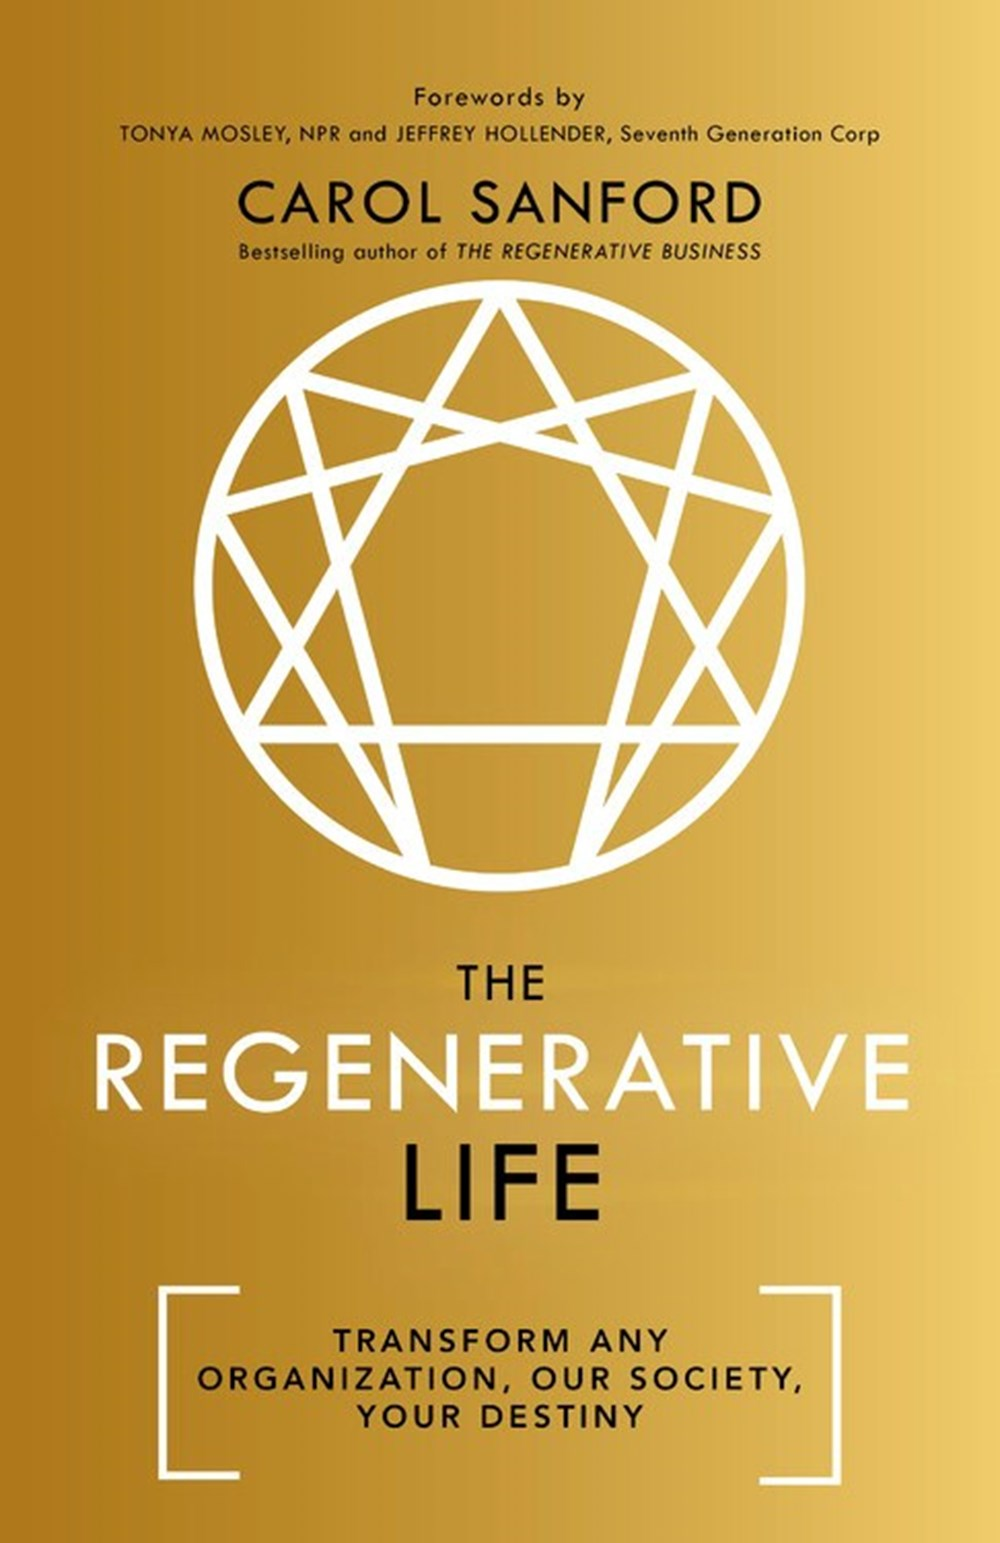 Regenerative Life Transform Any Organization, Our Society, and Your Destiny